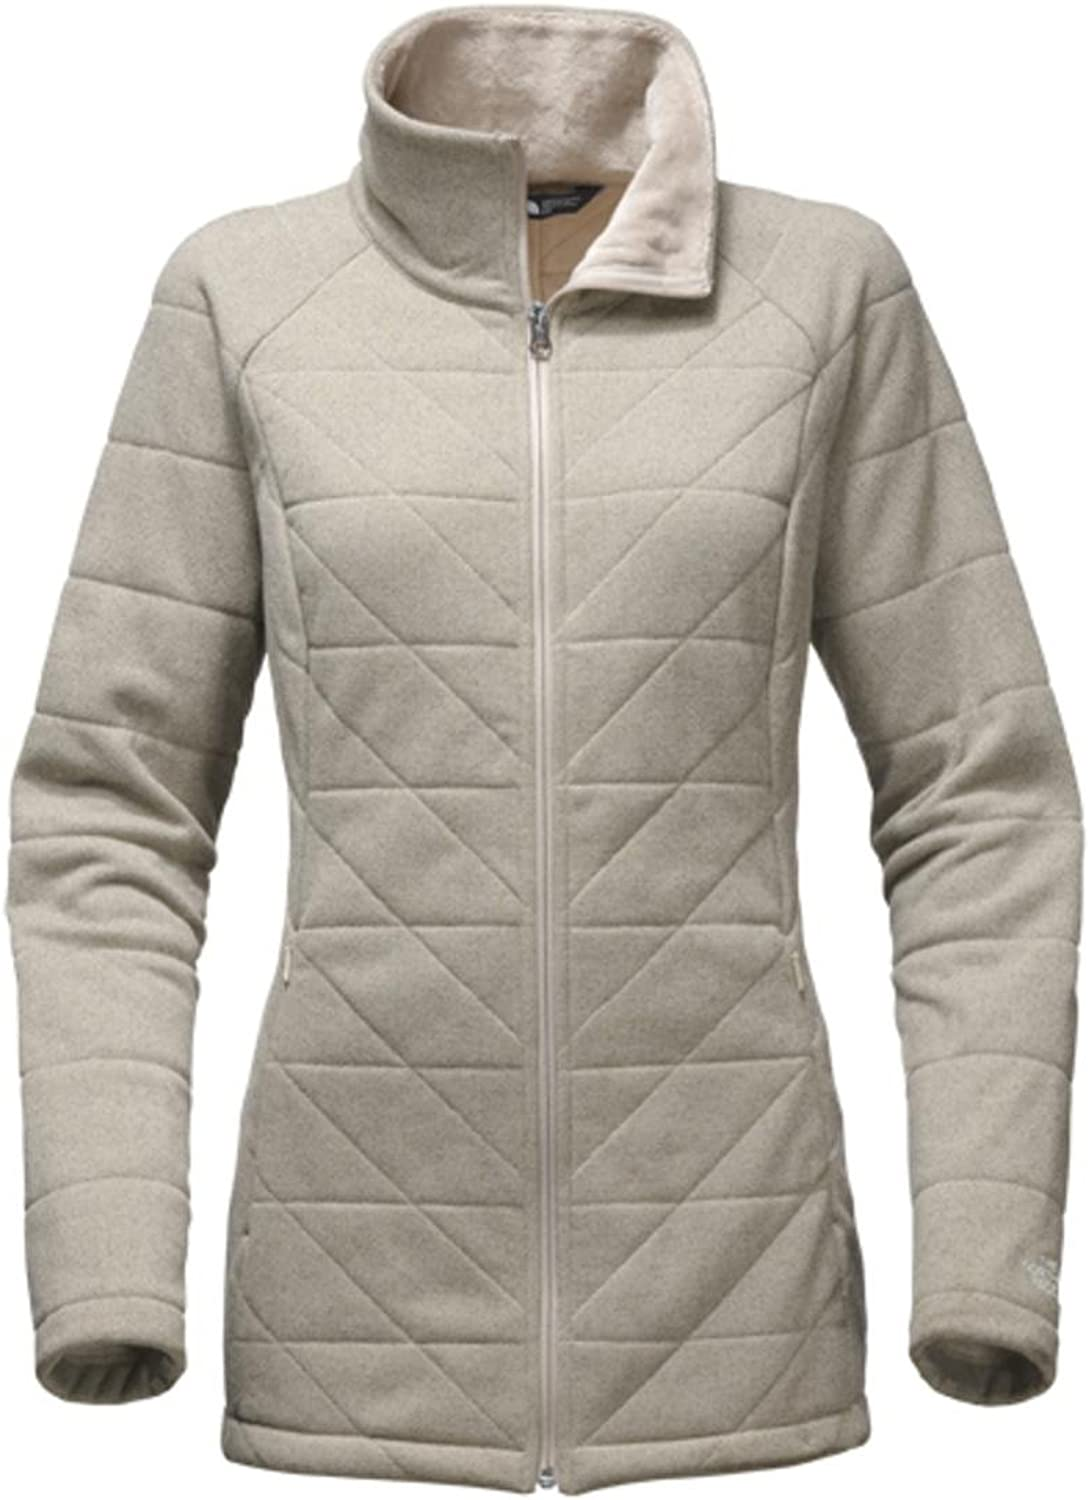 THE NORTH FACE Women's Knit Stitch Fleece Jacket